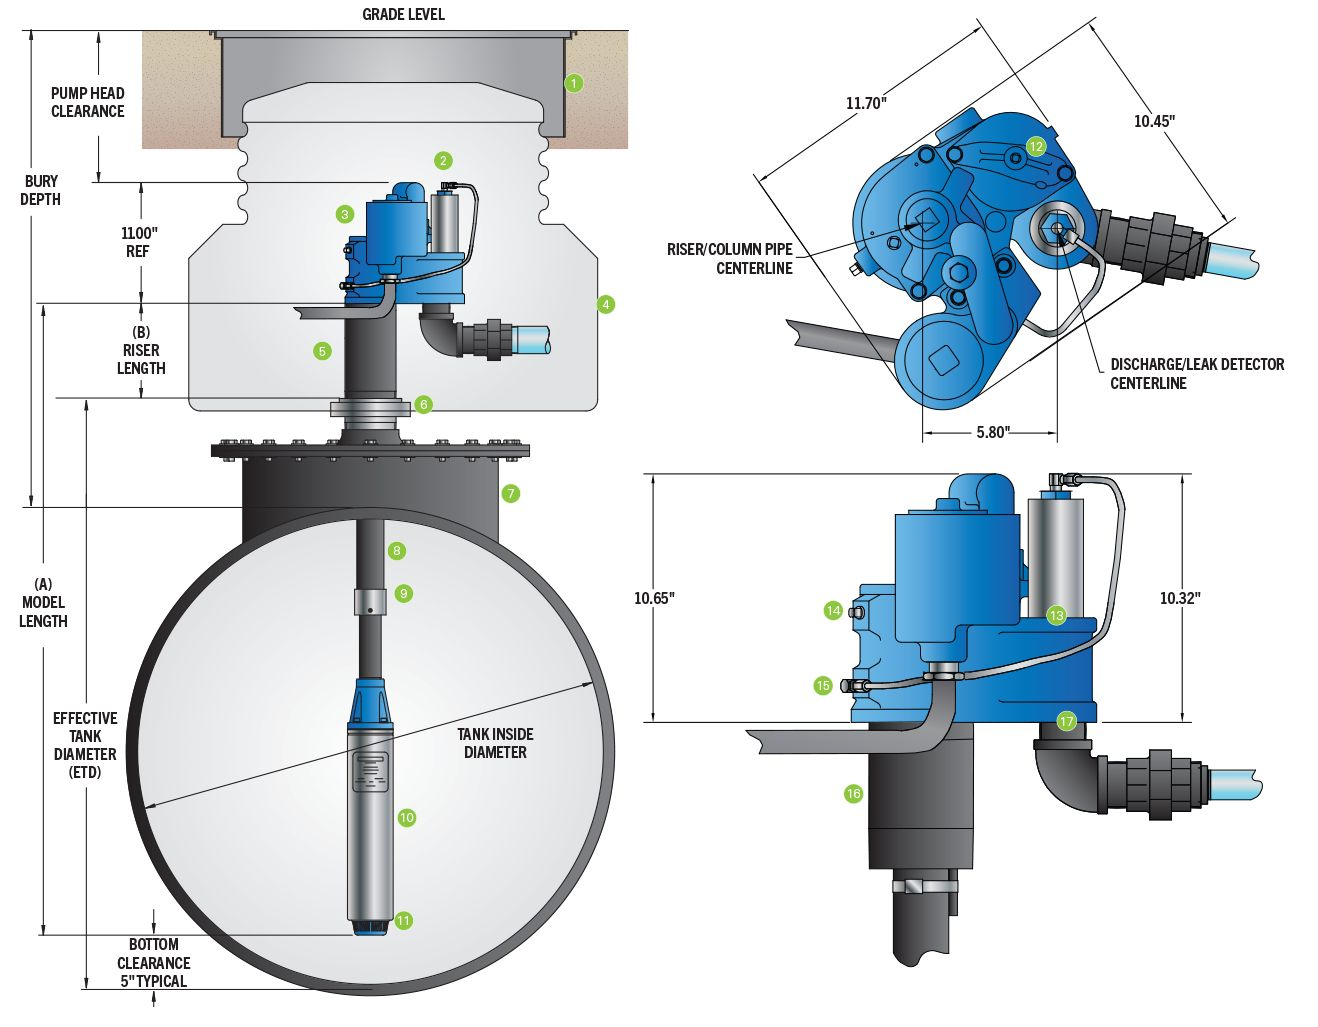 4 Submersible Pump Components & Key Dimensions.psd